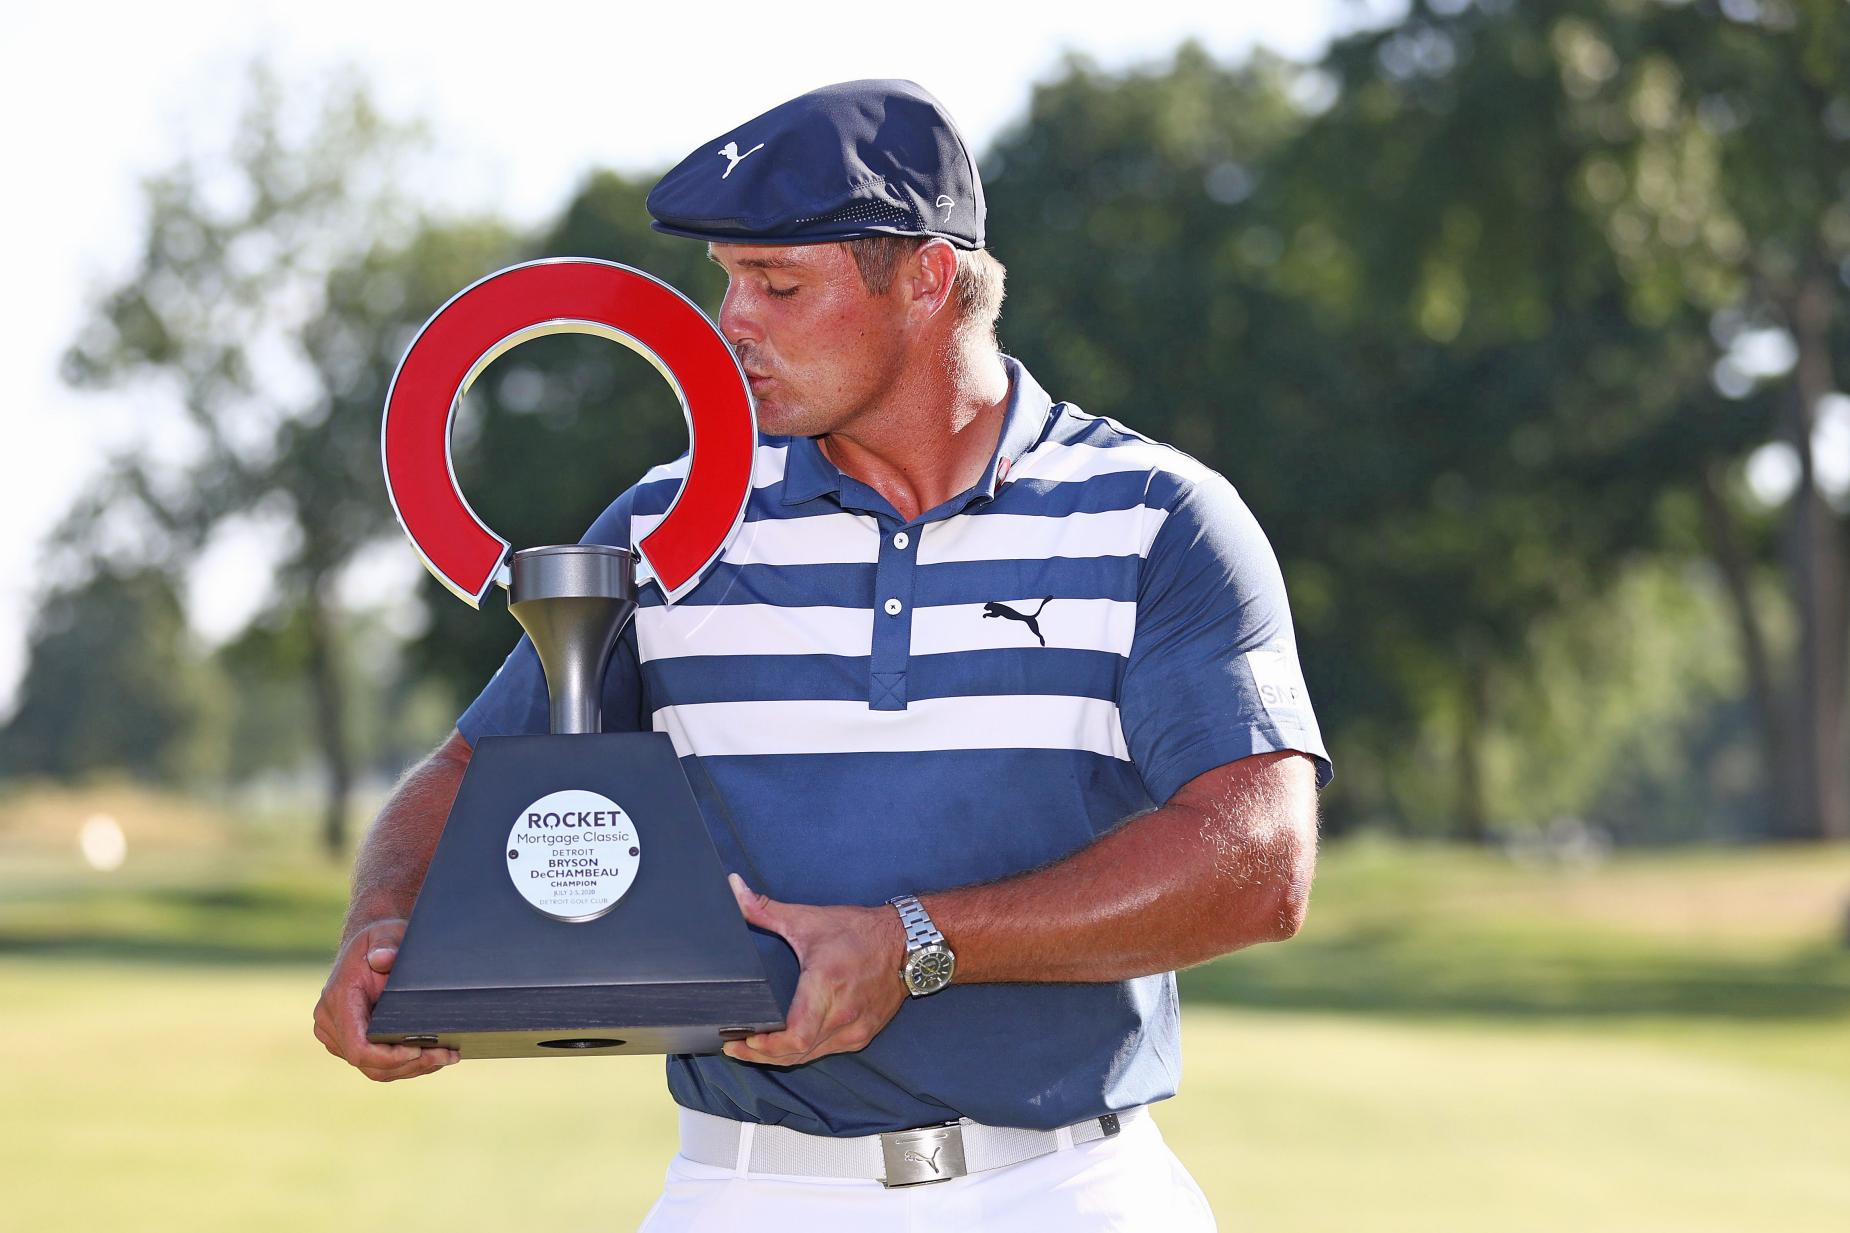 Bryson DeChambeau with the Rocket Mortgage trophy